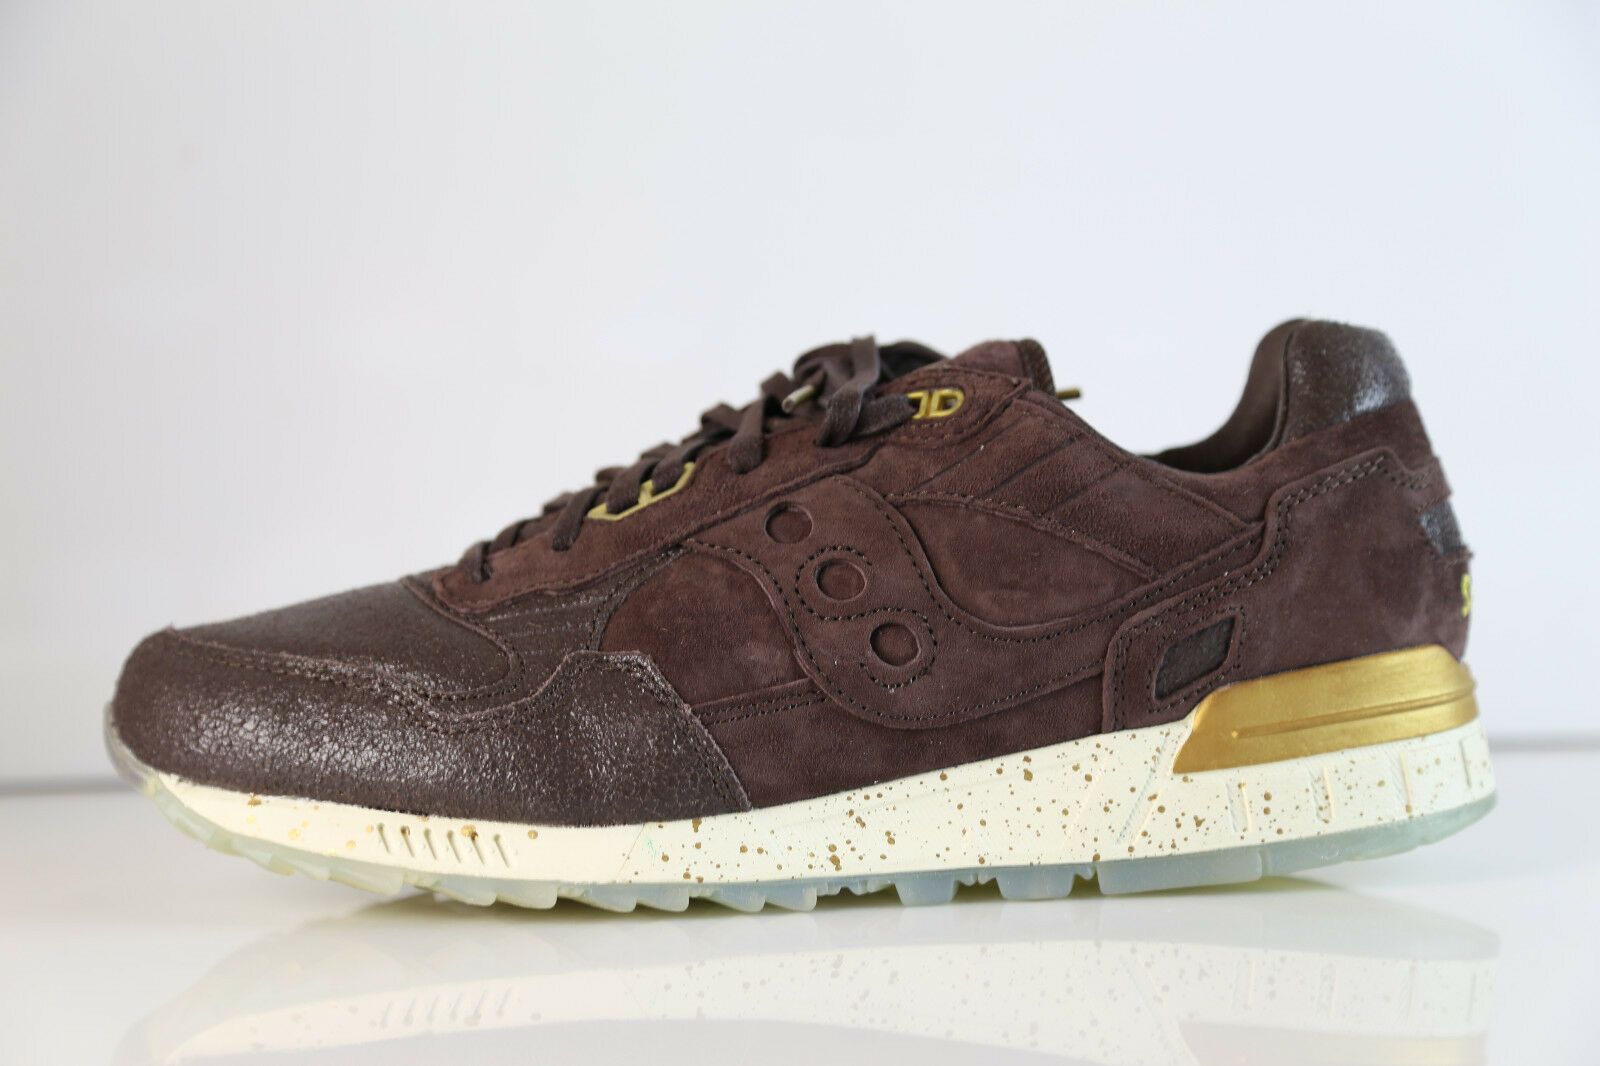 Saucony Shadow 5000 Elite Chocolate Pack braun S70311-2 7-11